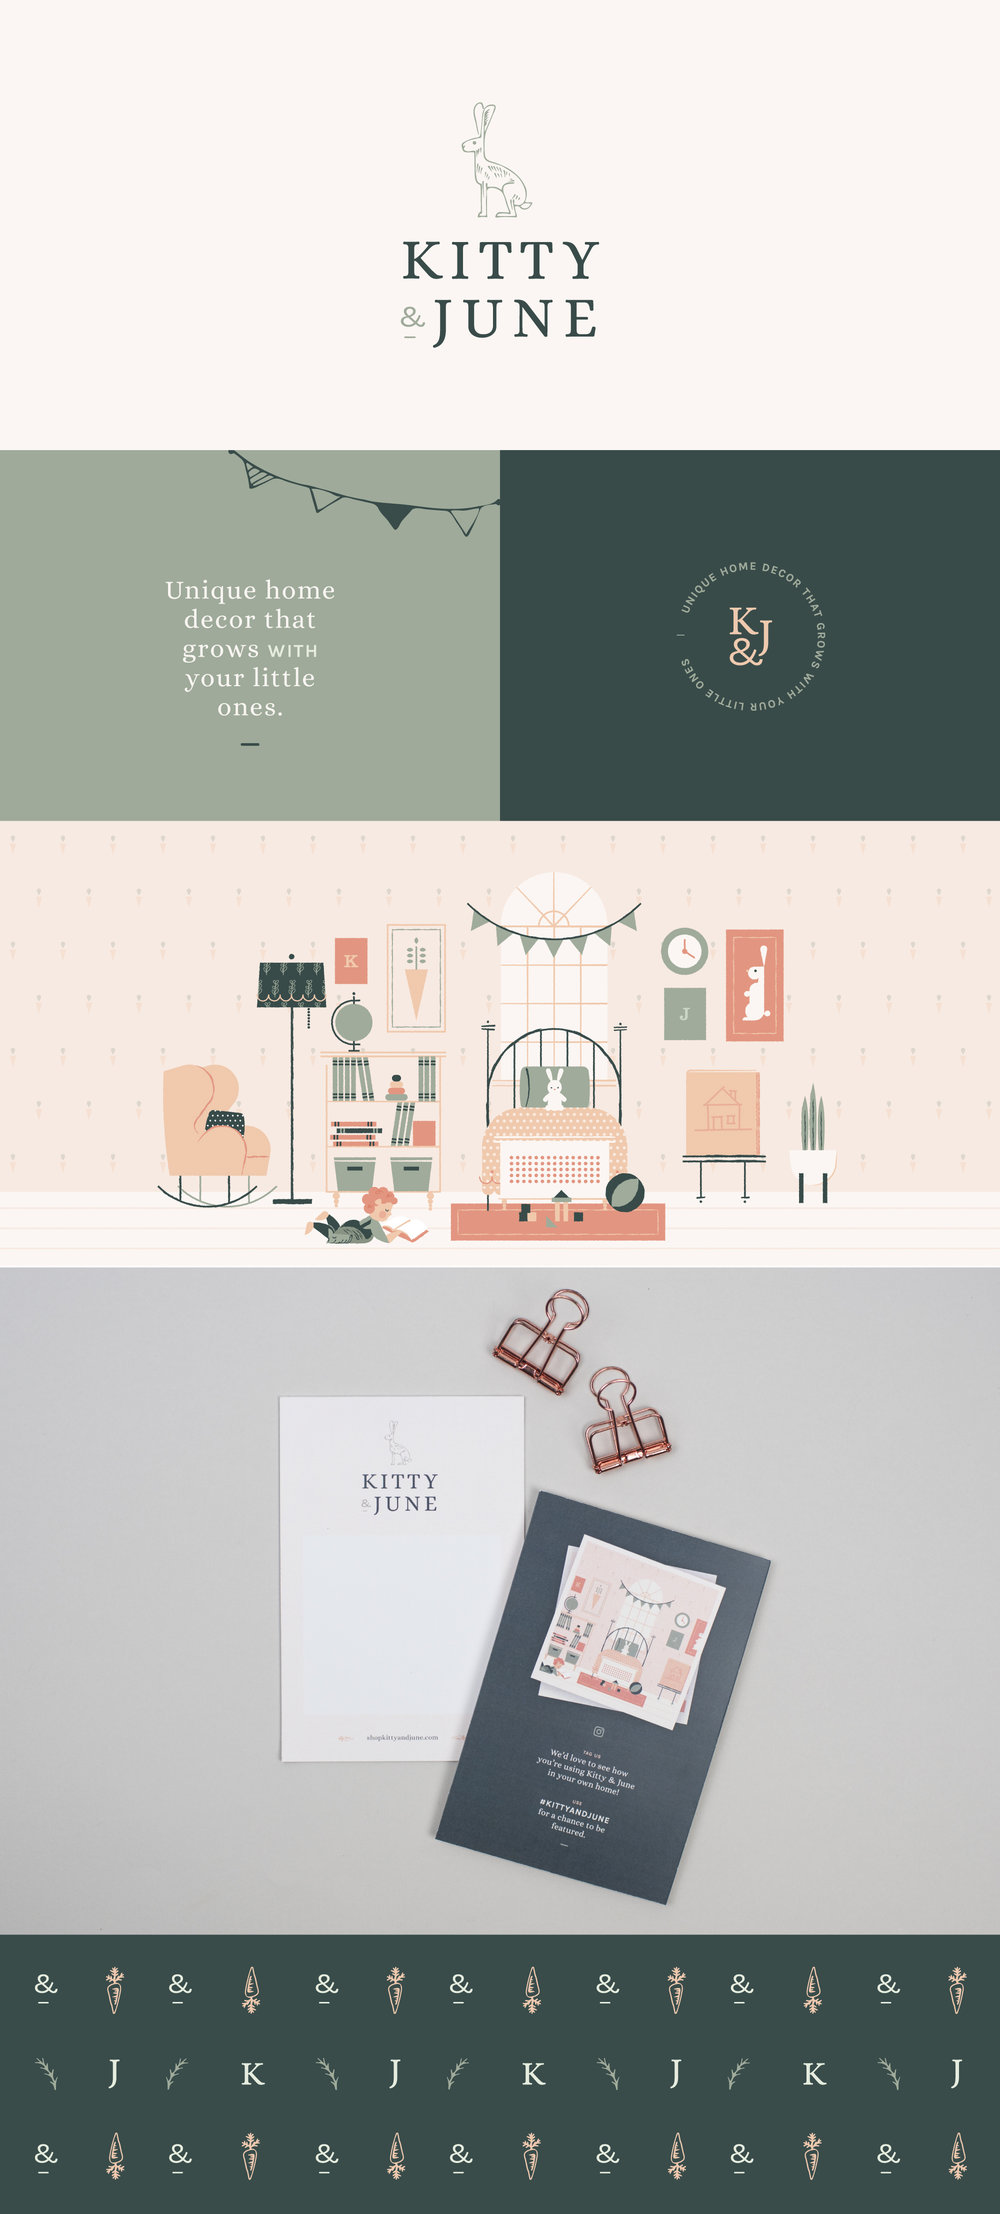 Kitty & June brand identity | Spruce Rd. | logo design, packaging, stationery, children's branding